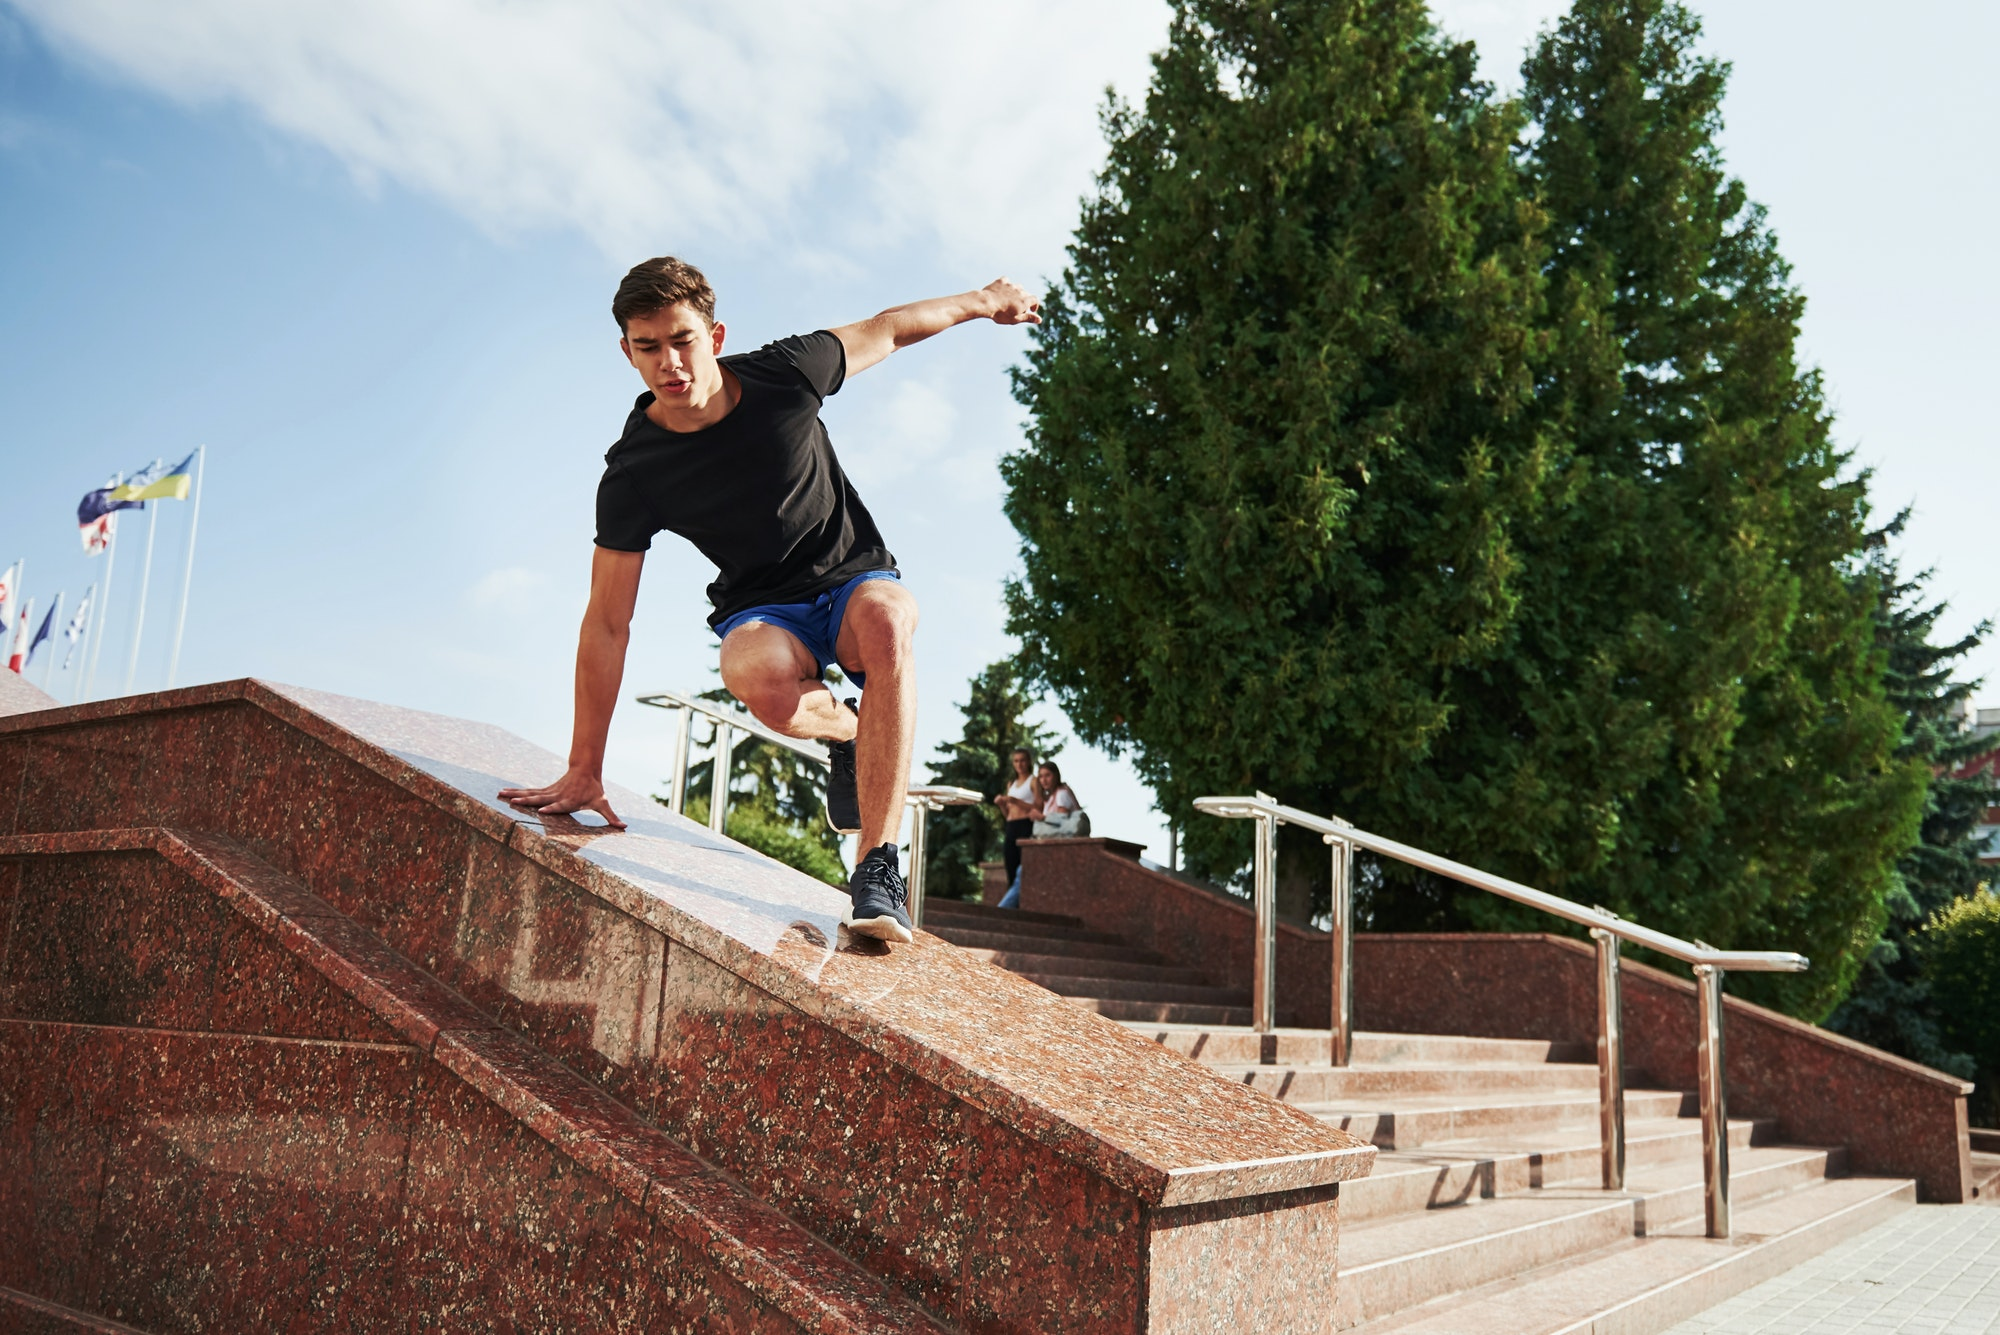 Above the obstacle. Young sports man doing parkour in the city at sunny daytime